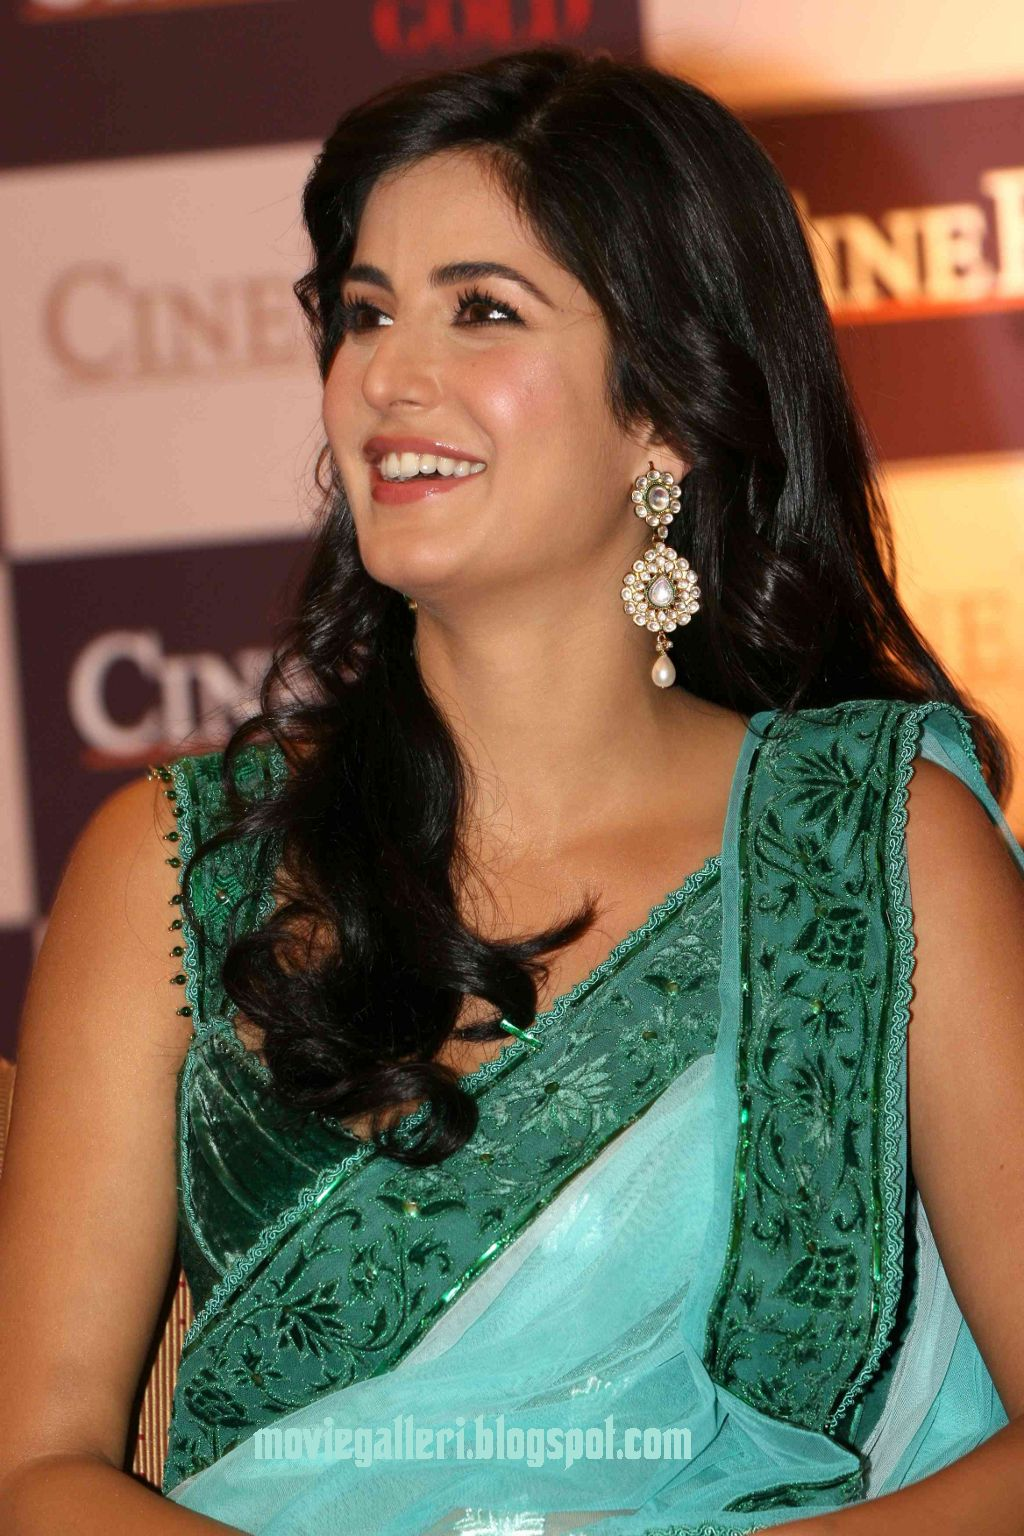 Latest Updates Katrina Kaif Wallpapers, Pictures, Hot -3014